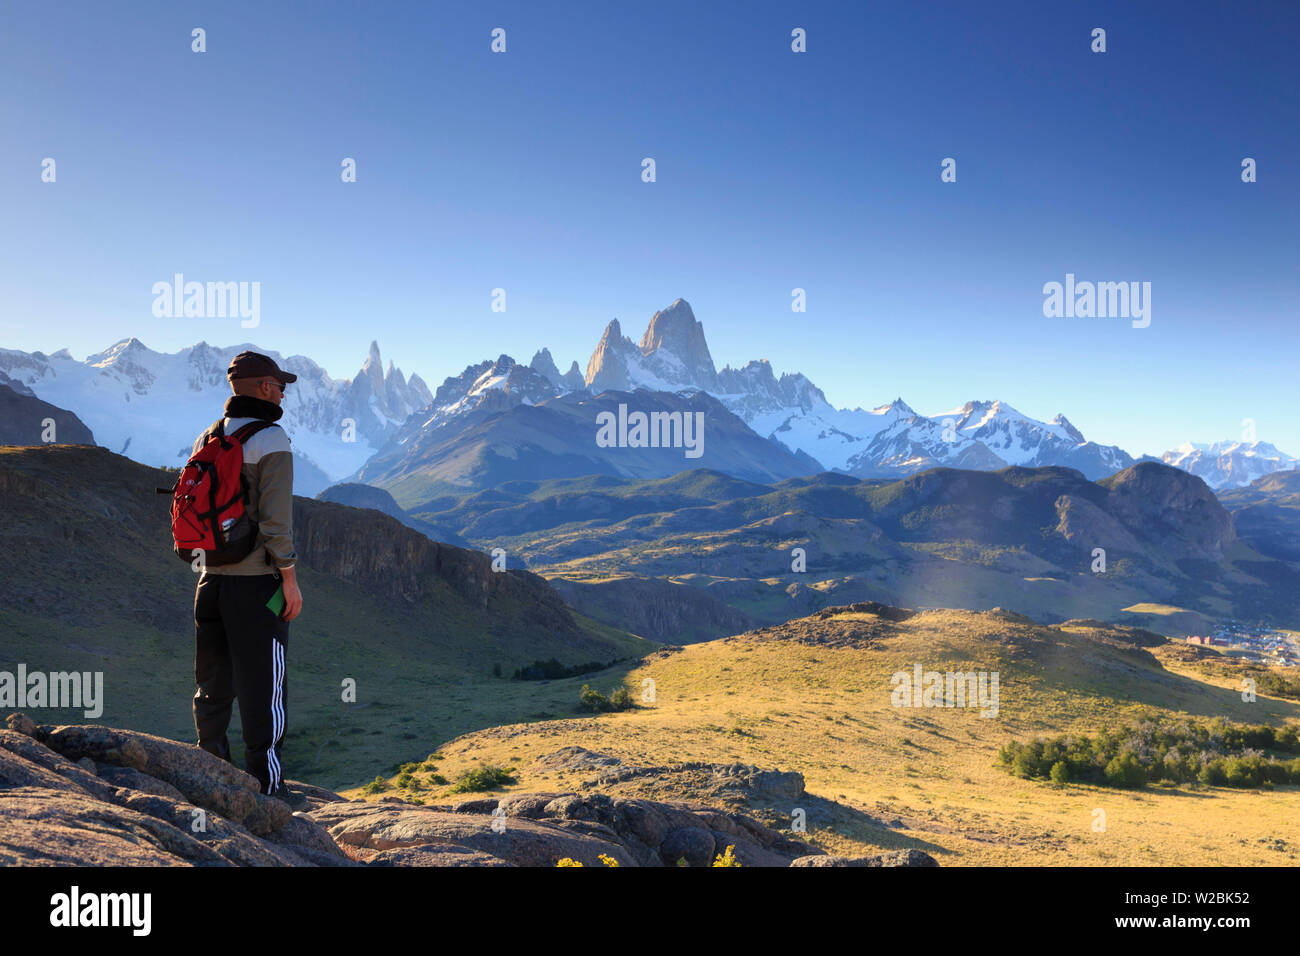 Argentina, Patagonia, El Chalten, Los Glaciares National Park, viewpoint along hiking trail inside the park with Cerro Torre and Cerro Fitzroy peaks (MR) - Stock Image